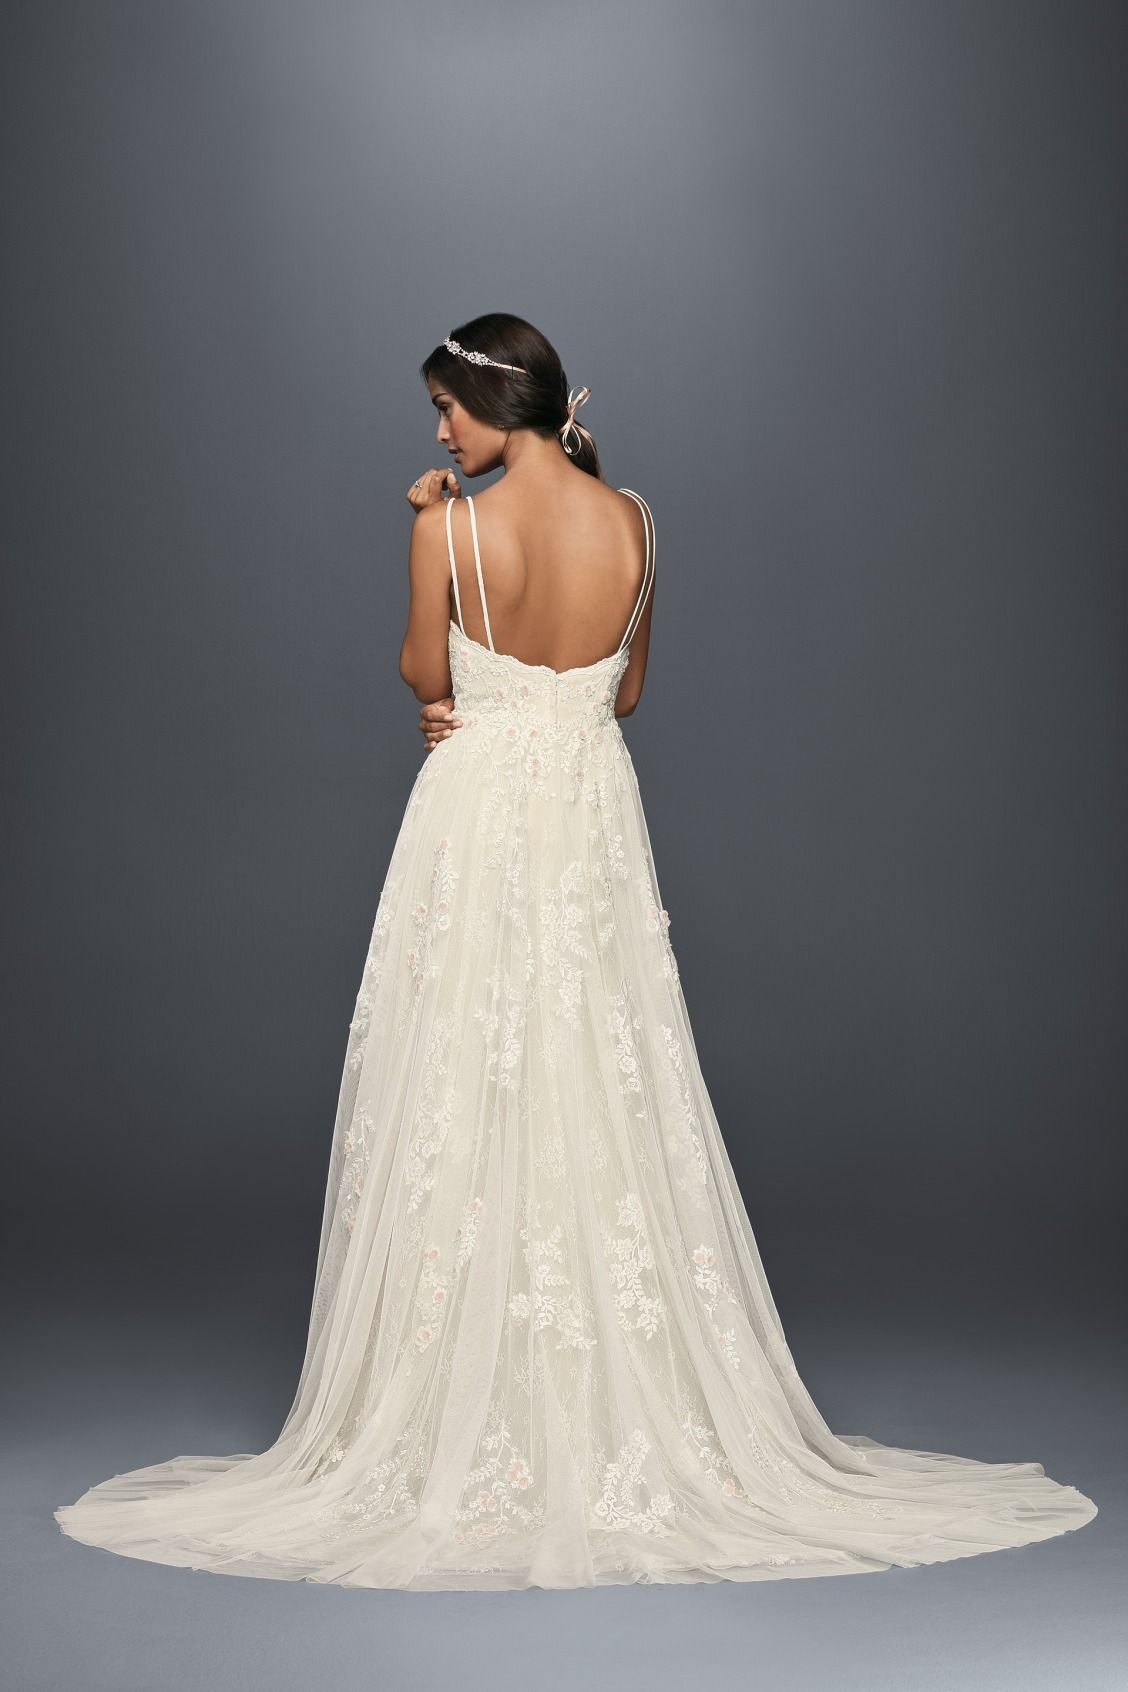 Scalloped A Line Wedding Dress With Double Straps David S Bridal Aline Wedding Dress Sweet Wedding Dresses Spaghetti Strap Wedding Dress [ 1692 x 1128 Pixel ]